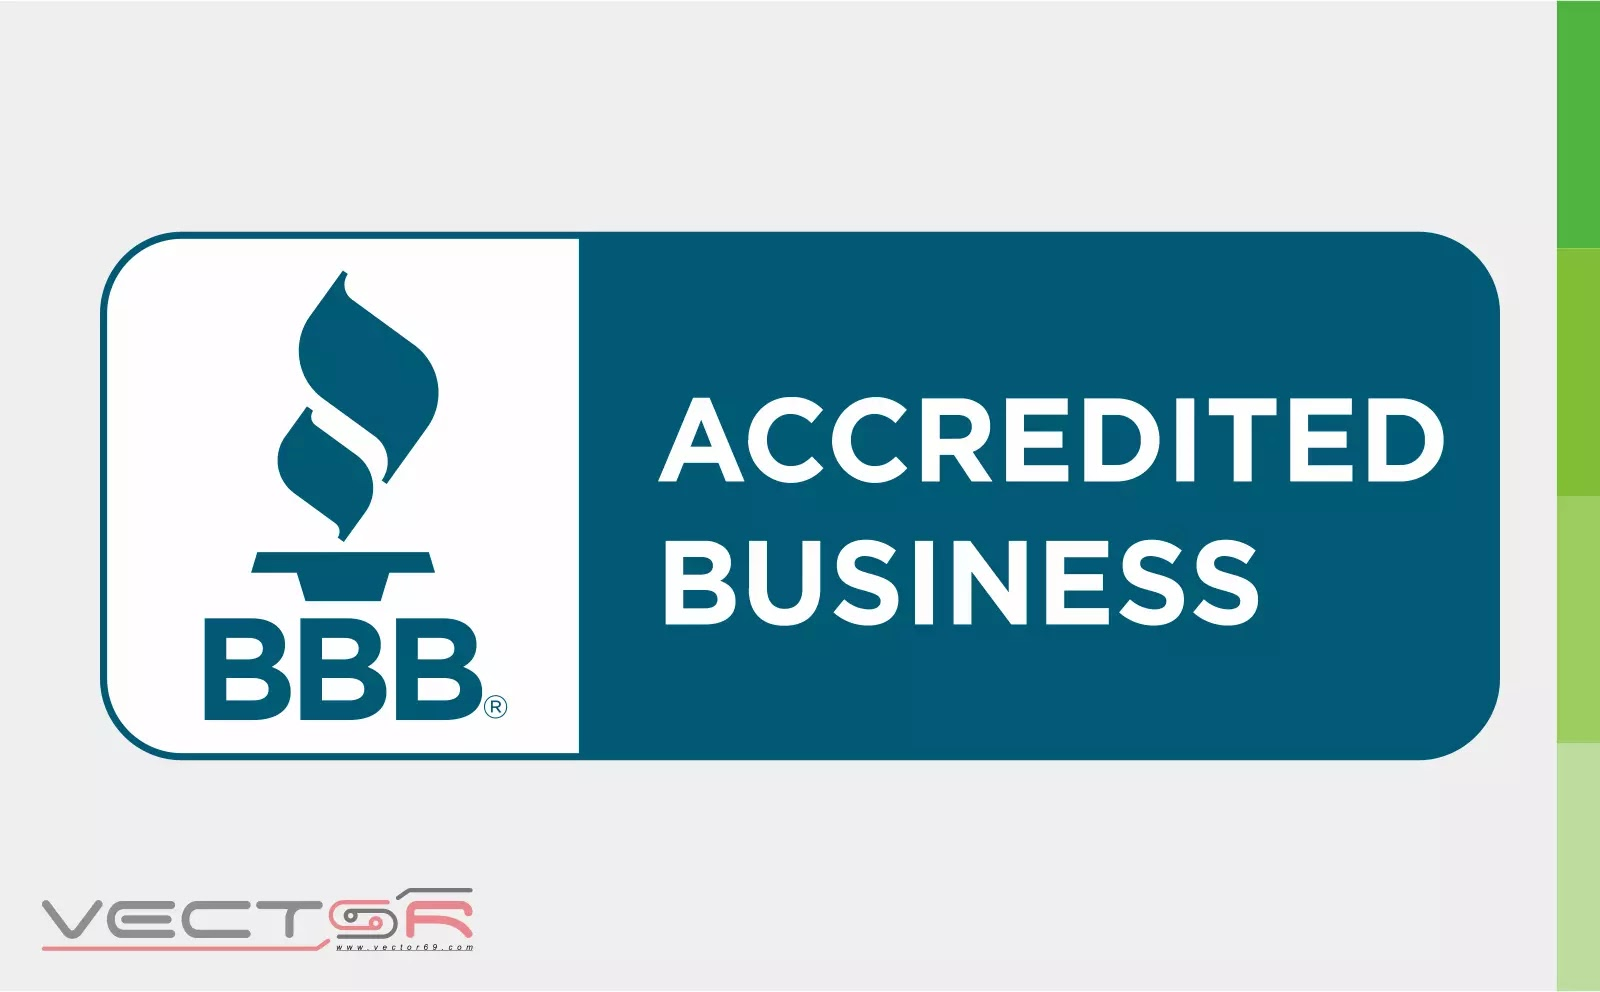 BBB Accredited Business Horizontal Seal - Download Vector File CDR (CorelDraw)